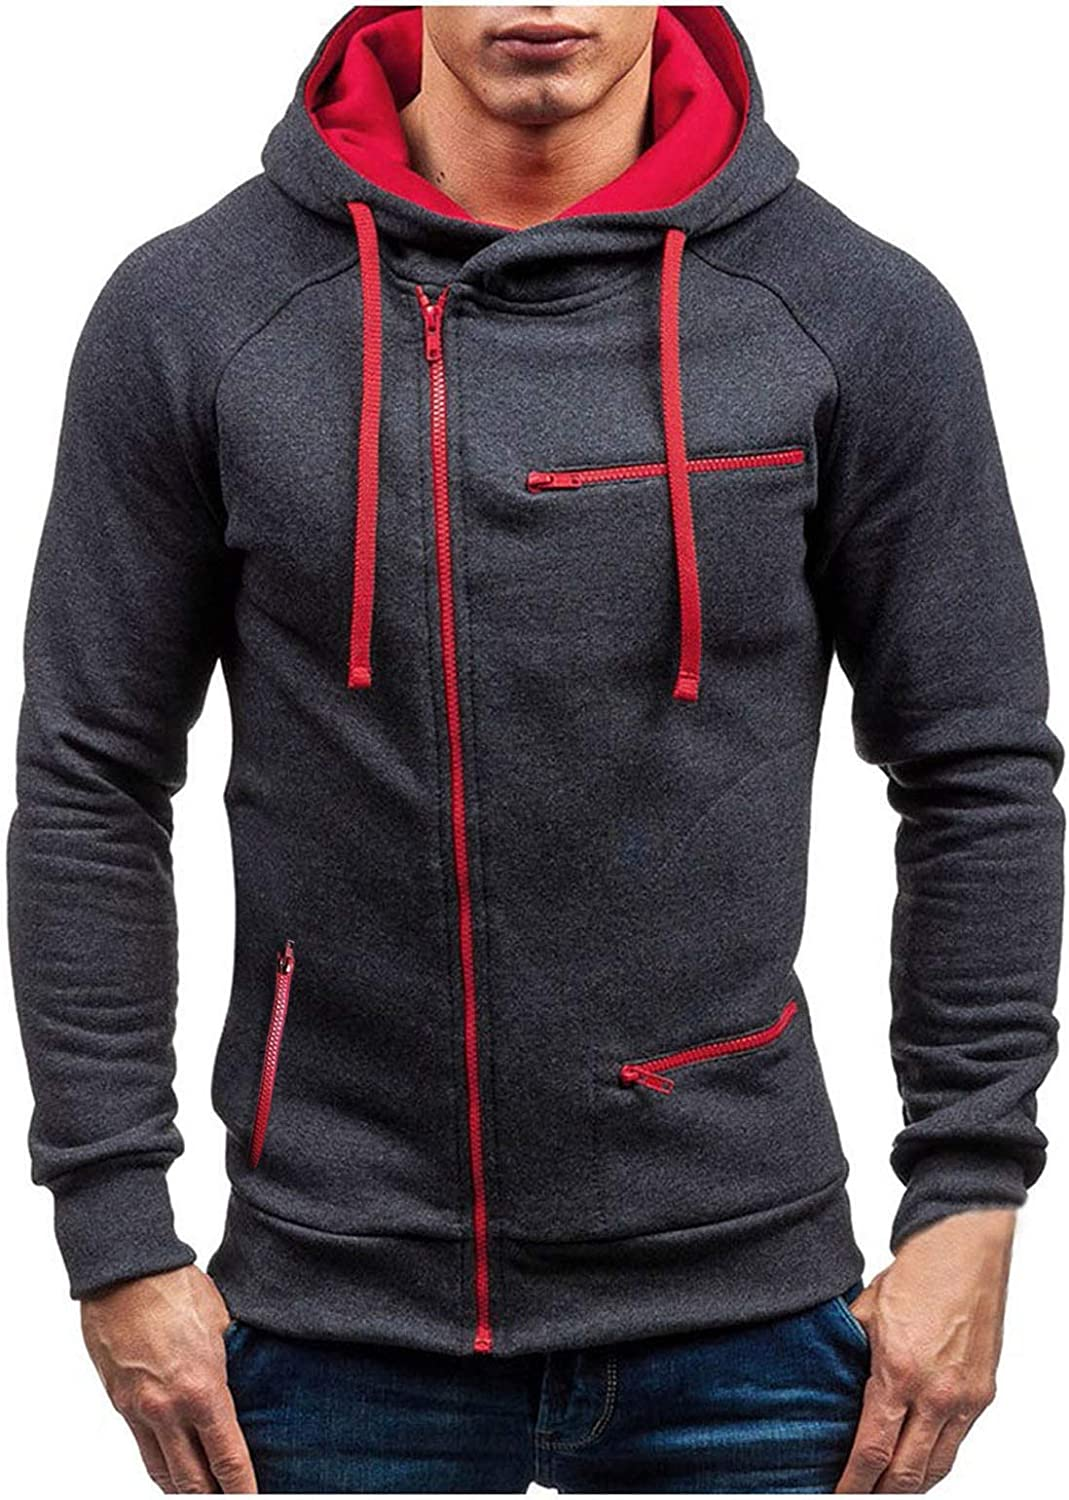 HONGJ Men's Zipper Hoodies, Fall Fashion Patchwork Drawstring Hooded Sweatshirts Workout Sports Casual Pullover Tops